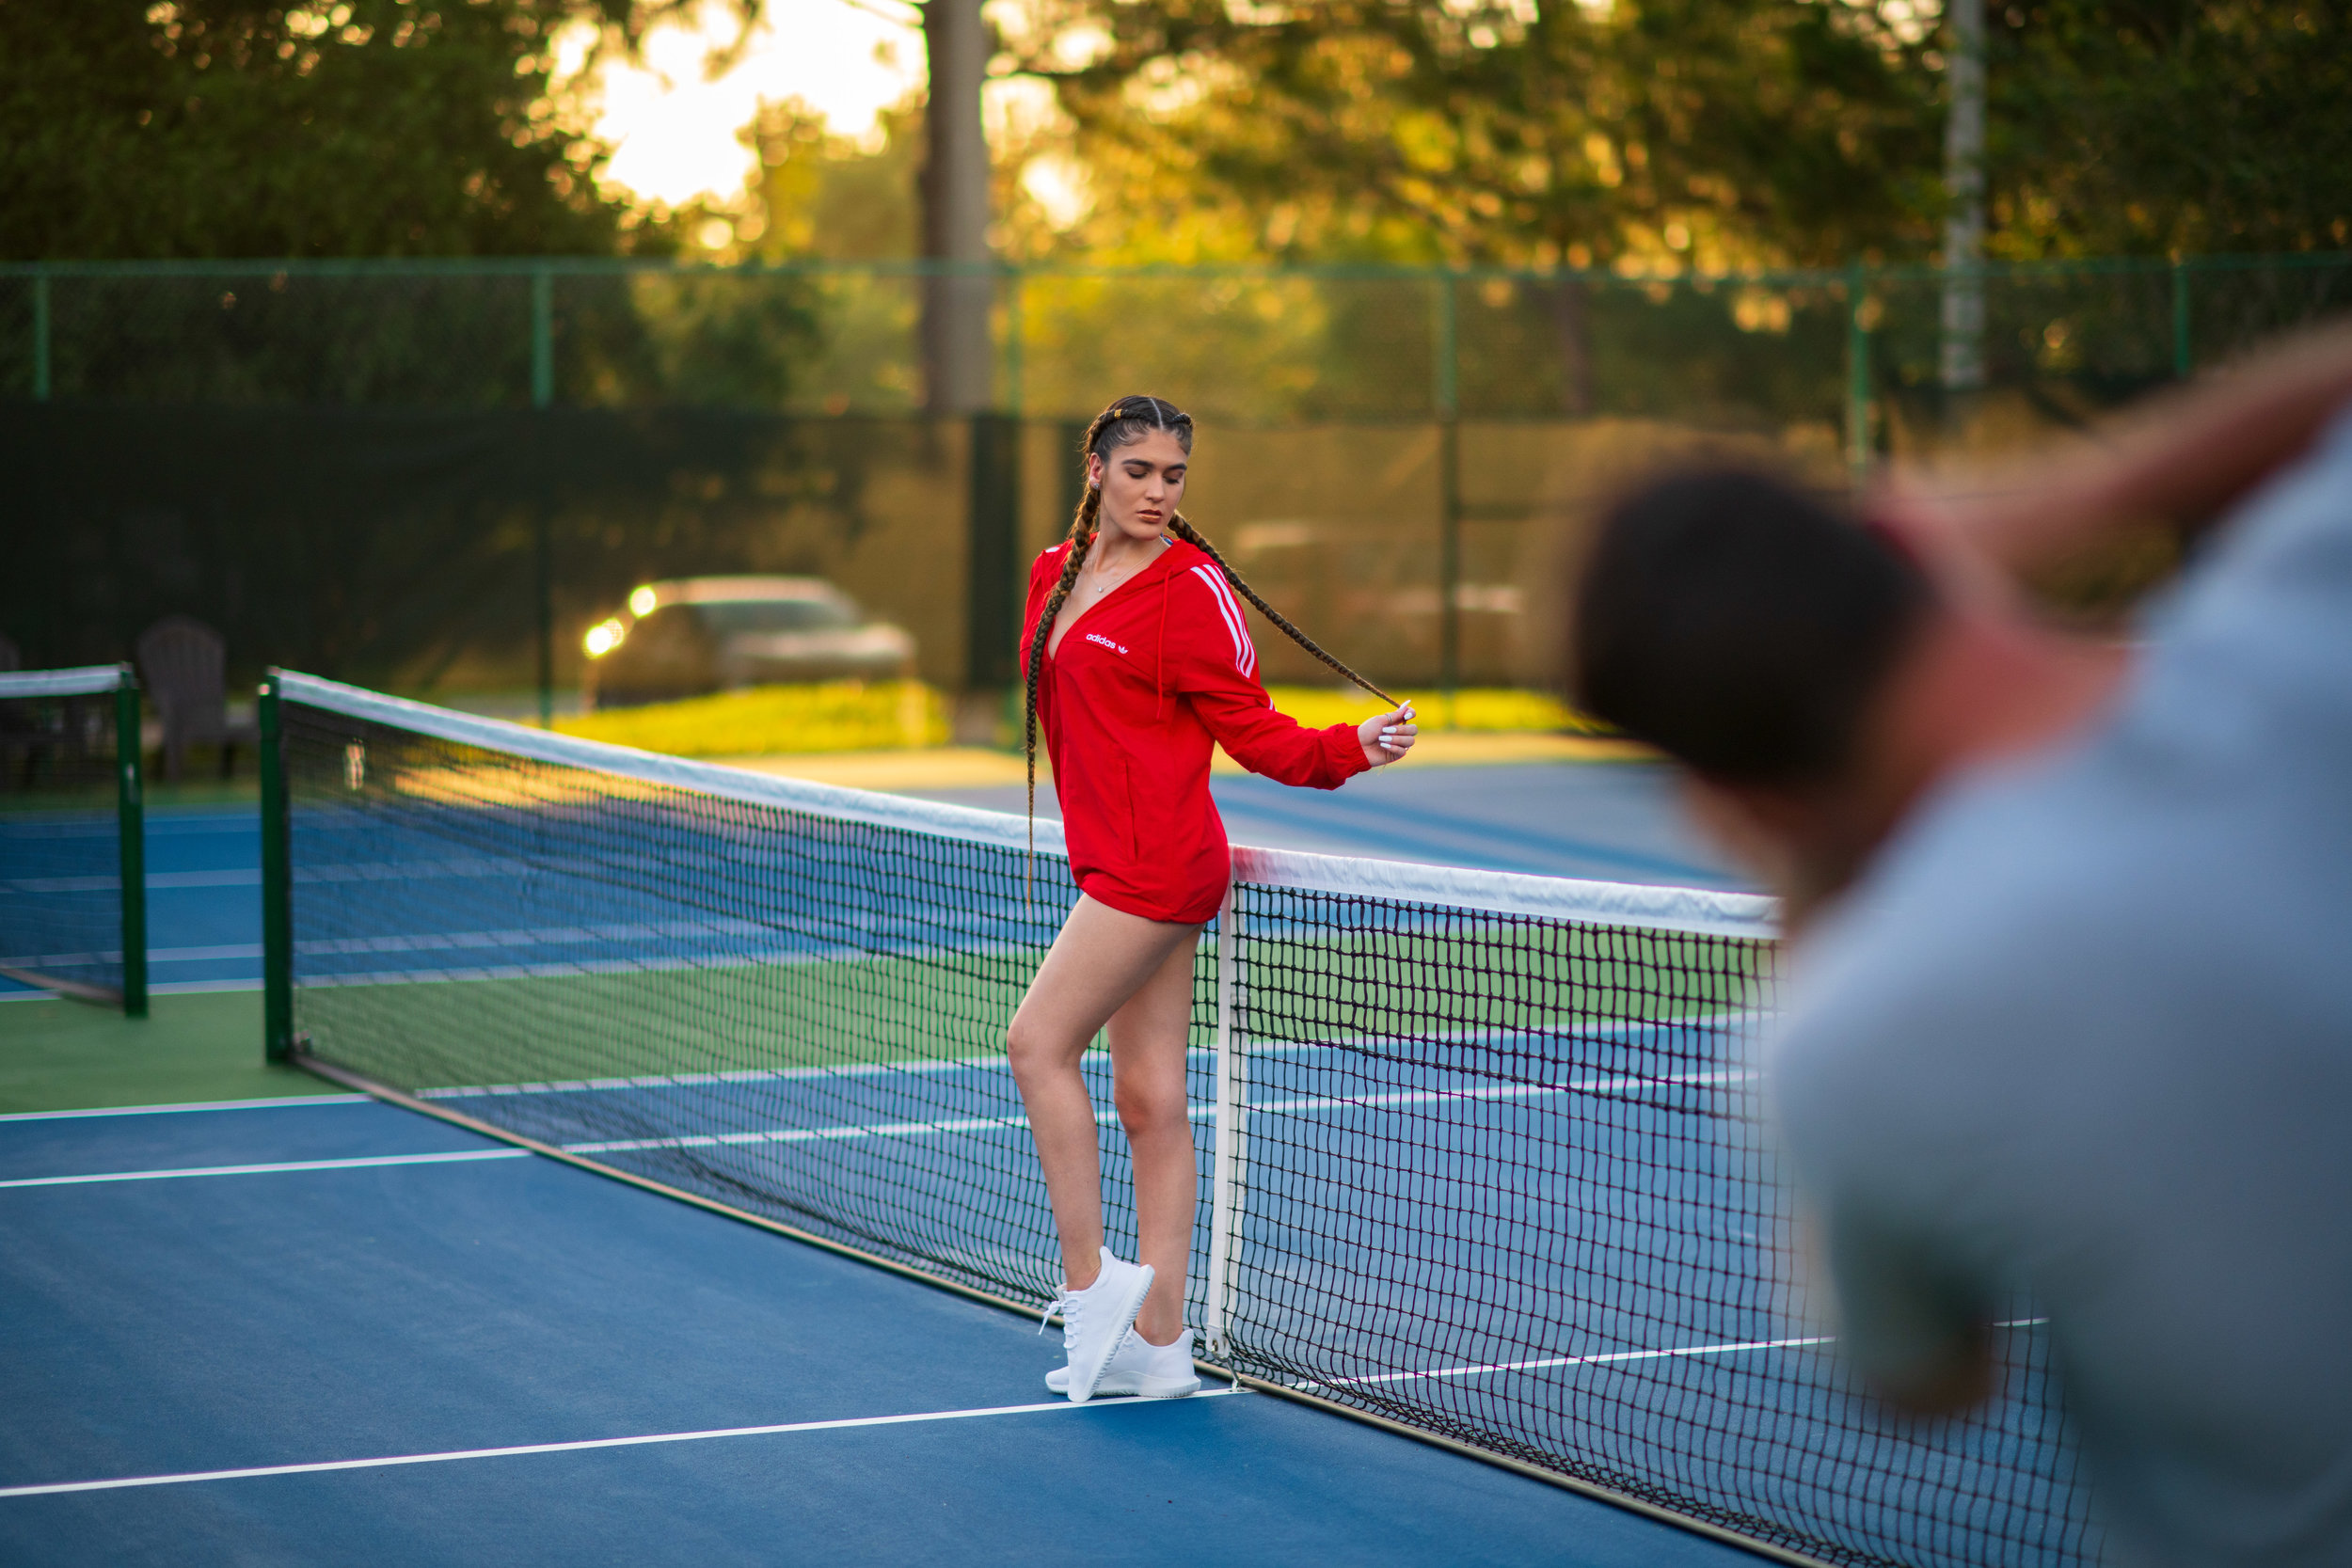 Tennis Shoot BTS (Tyler).jpg